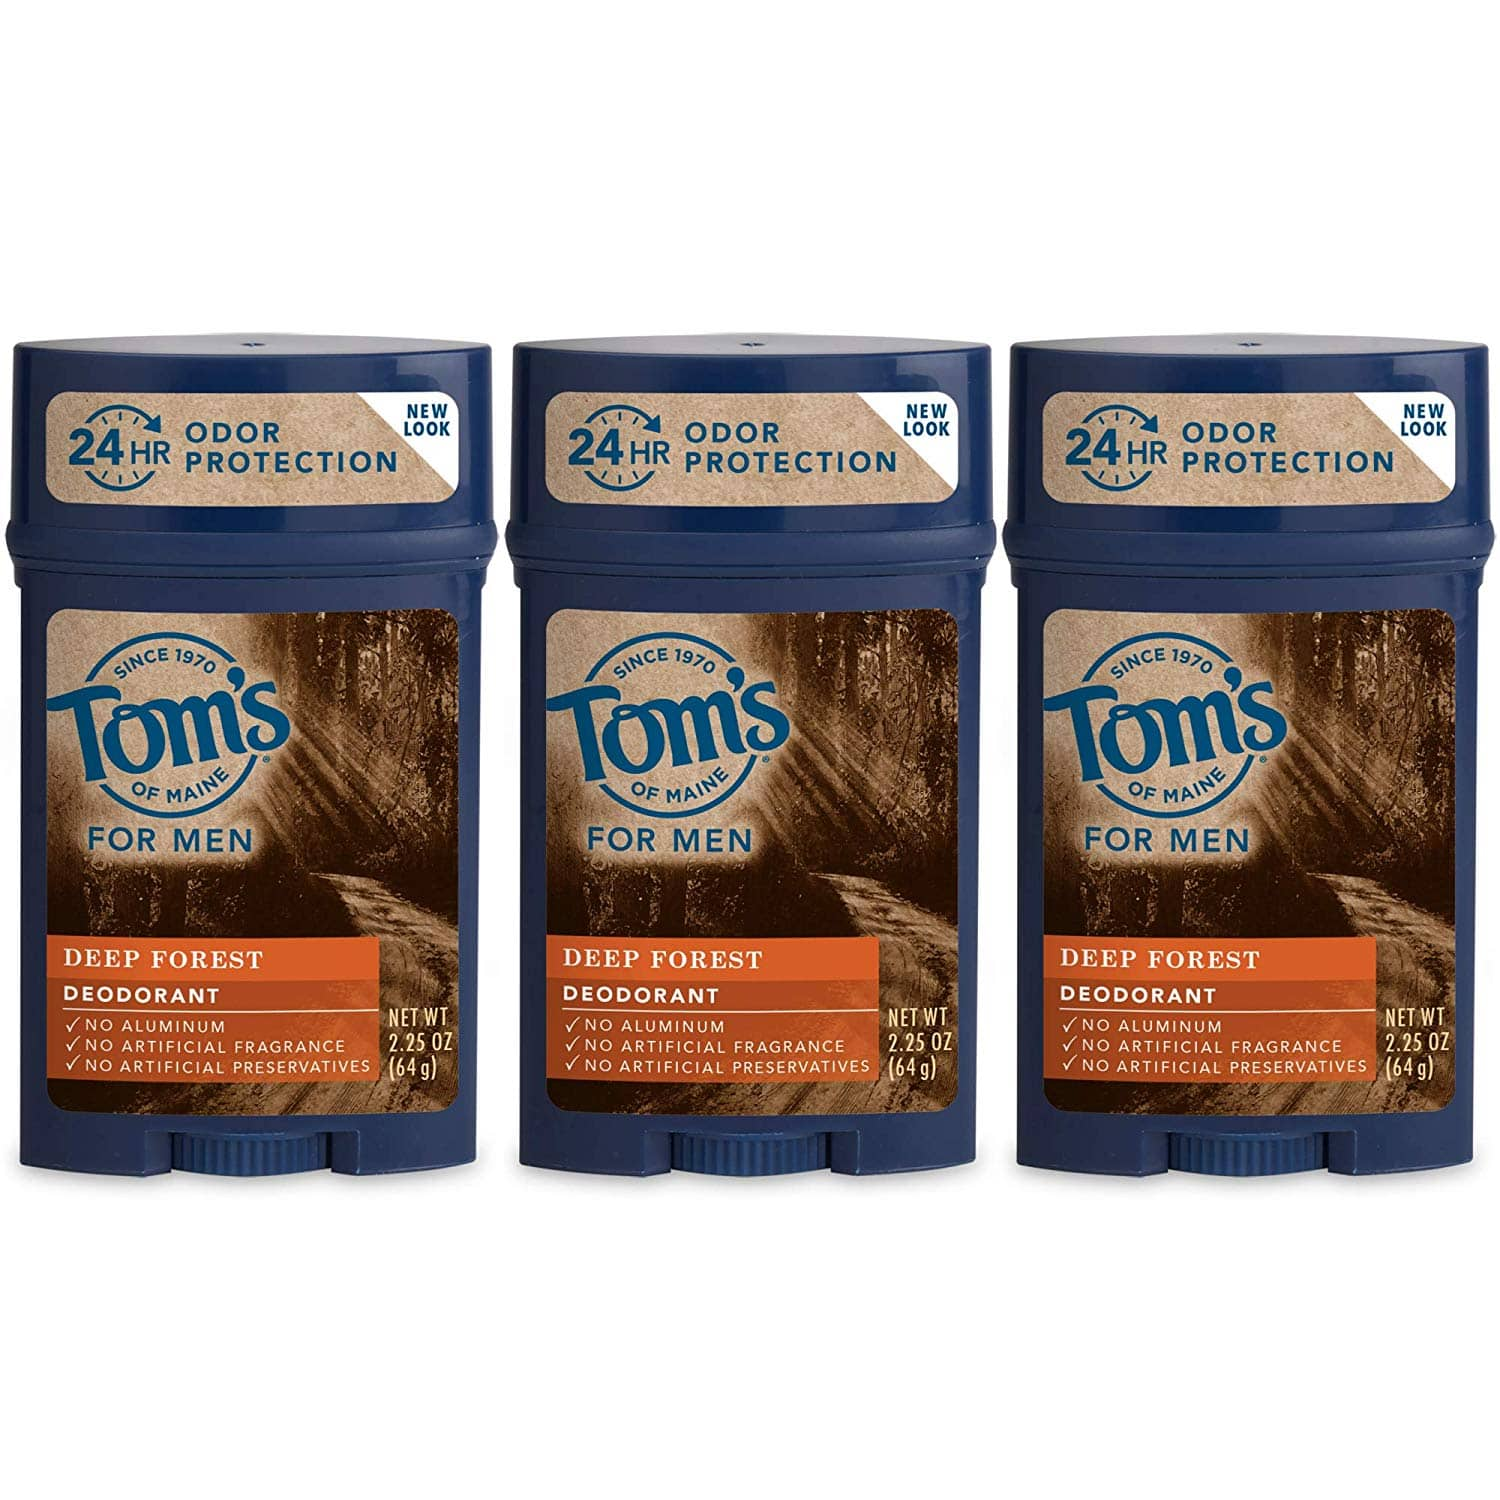 3-Pack Tom's of Maine Men's Deodorant from $7.68 w/ S&S + Free Shipping